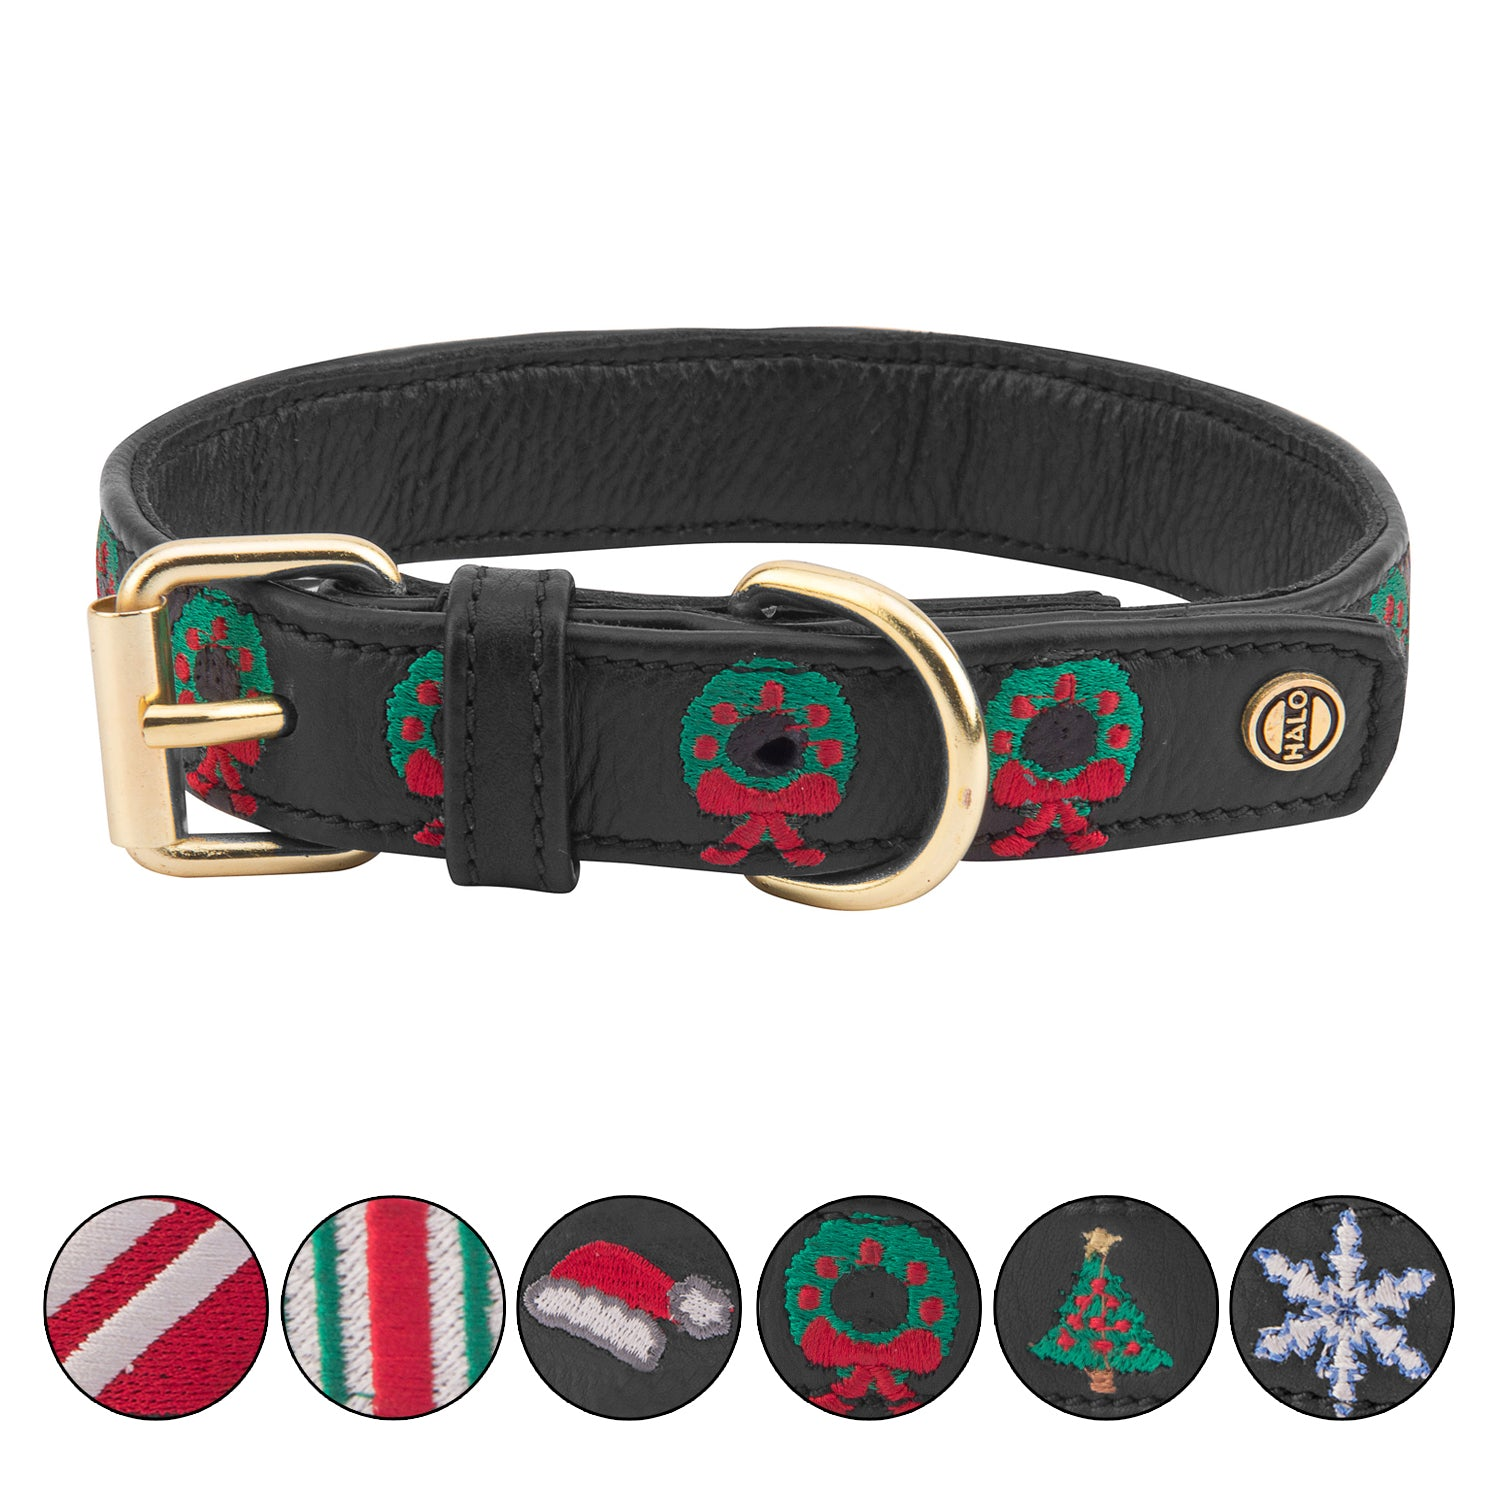 Halo Dog Collar - Leather with Christmas Wreath Embroidery - Halo - Breeches.com